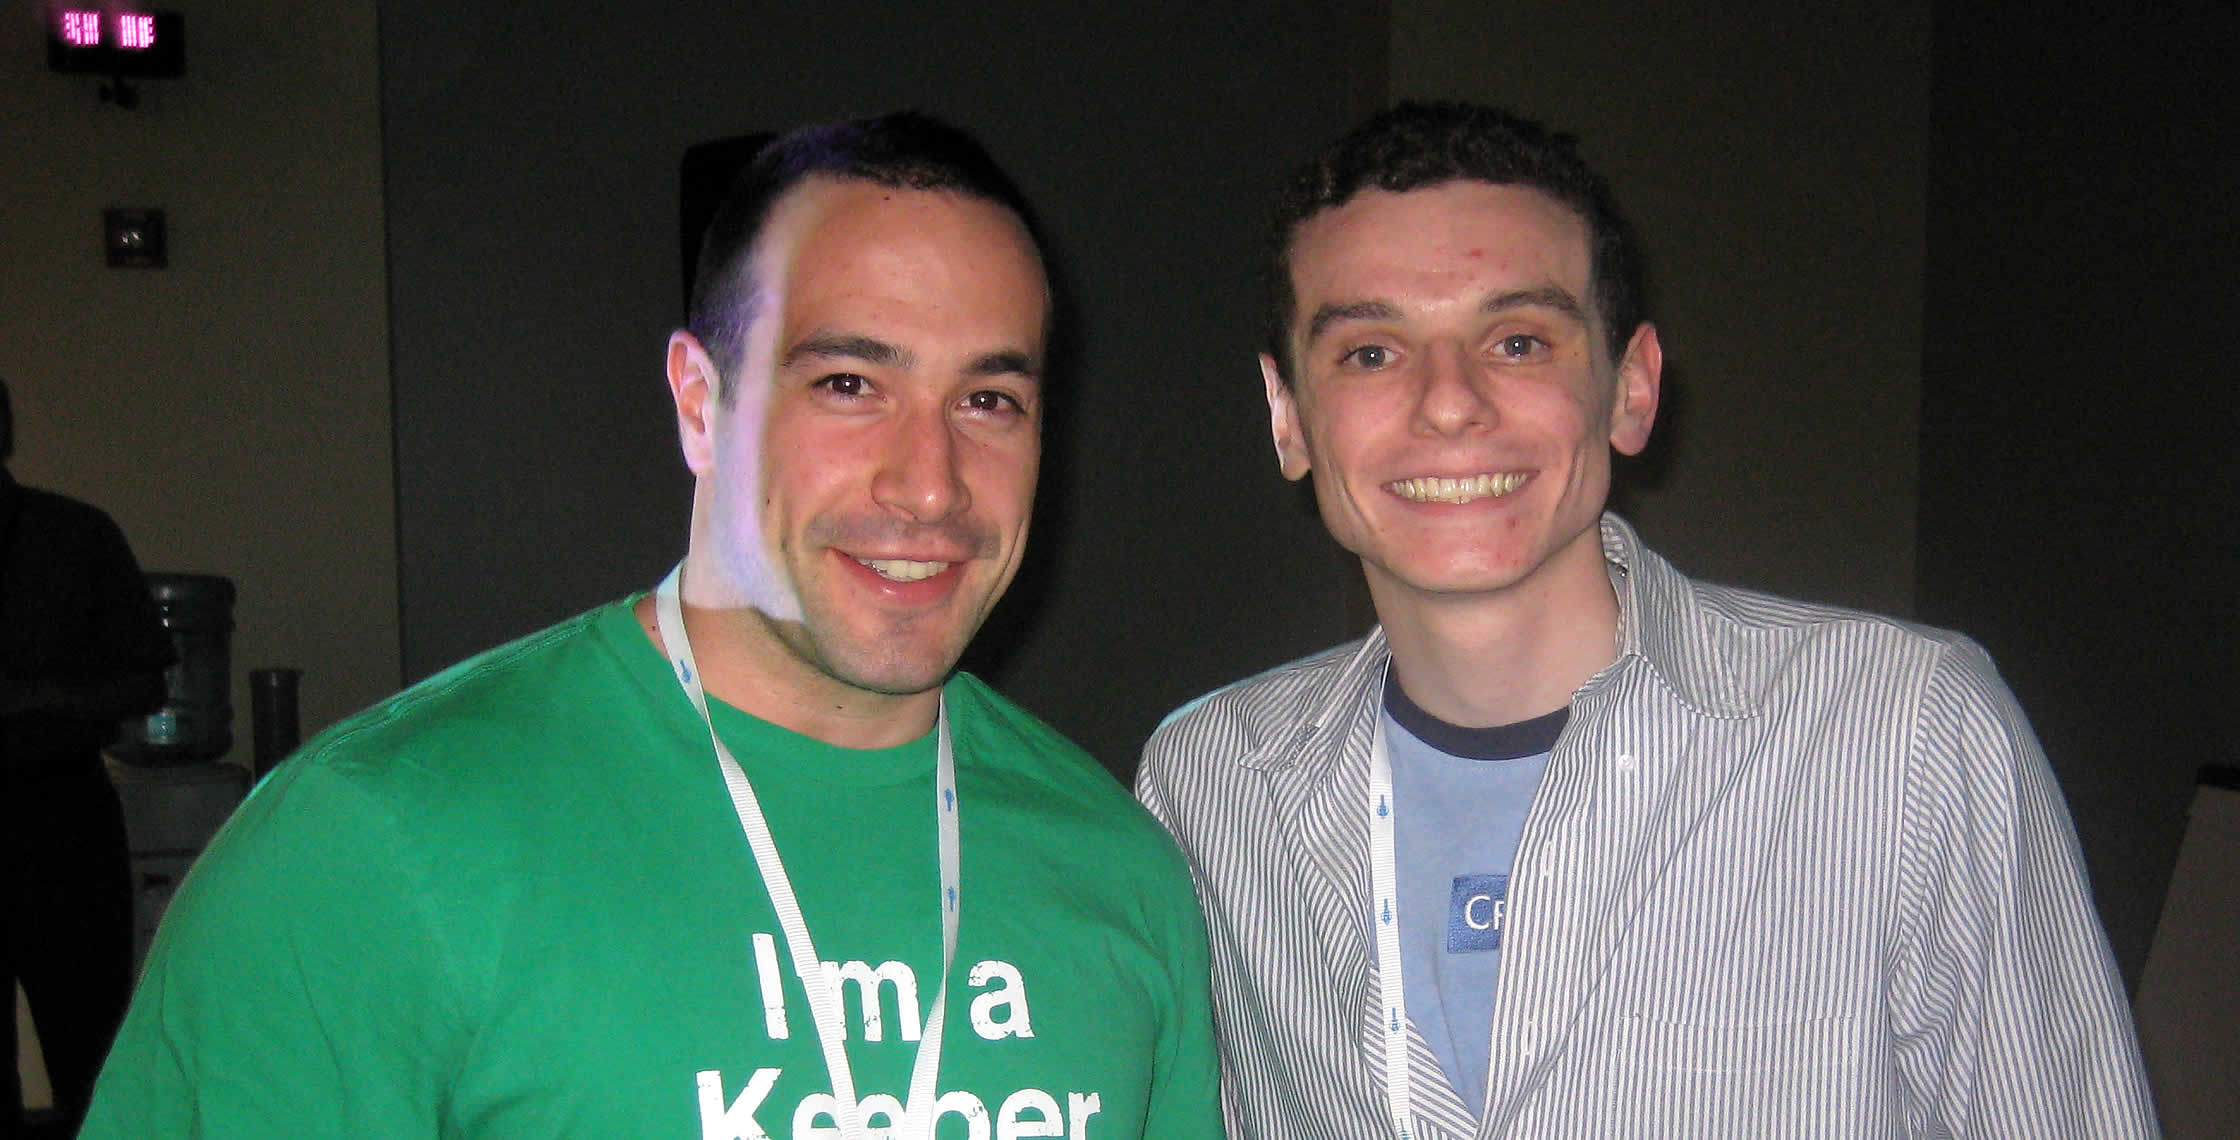 Ben Nadel at CFUNITED 2008 (Washington, D.C.) with: Elliott Sprehn